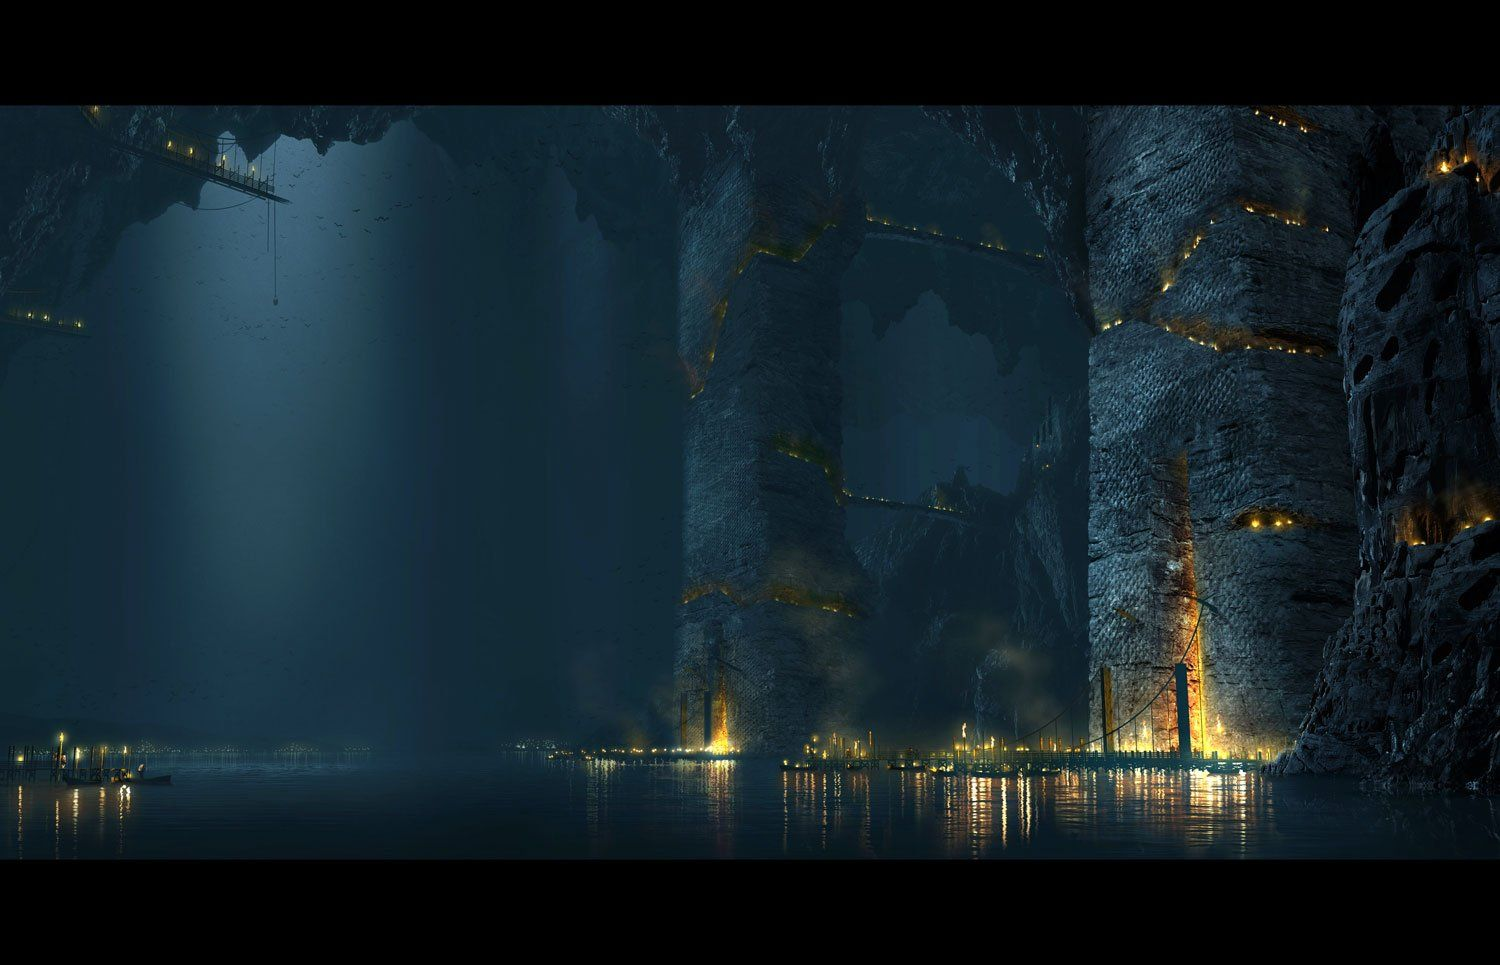 1500x965_5560_Dark_Dwarfs_2d_fantasy_architecture_landscape_picture_image_digital_art.jpg (1500×965)